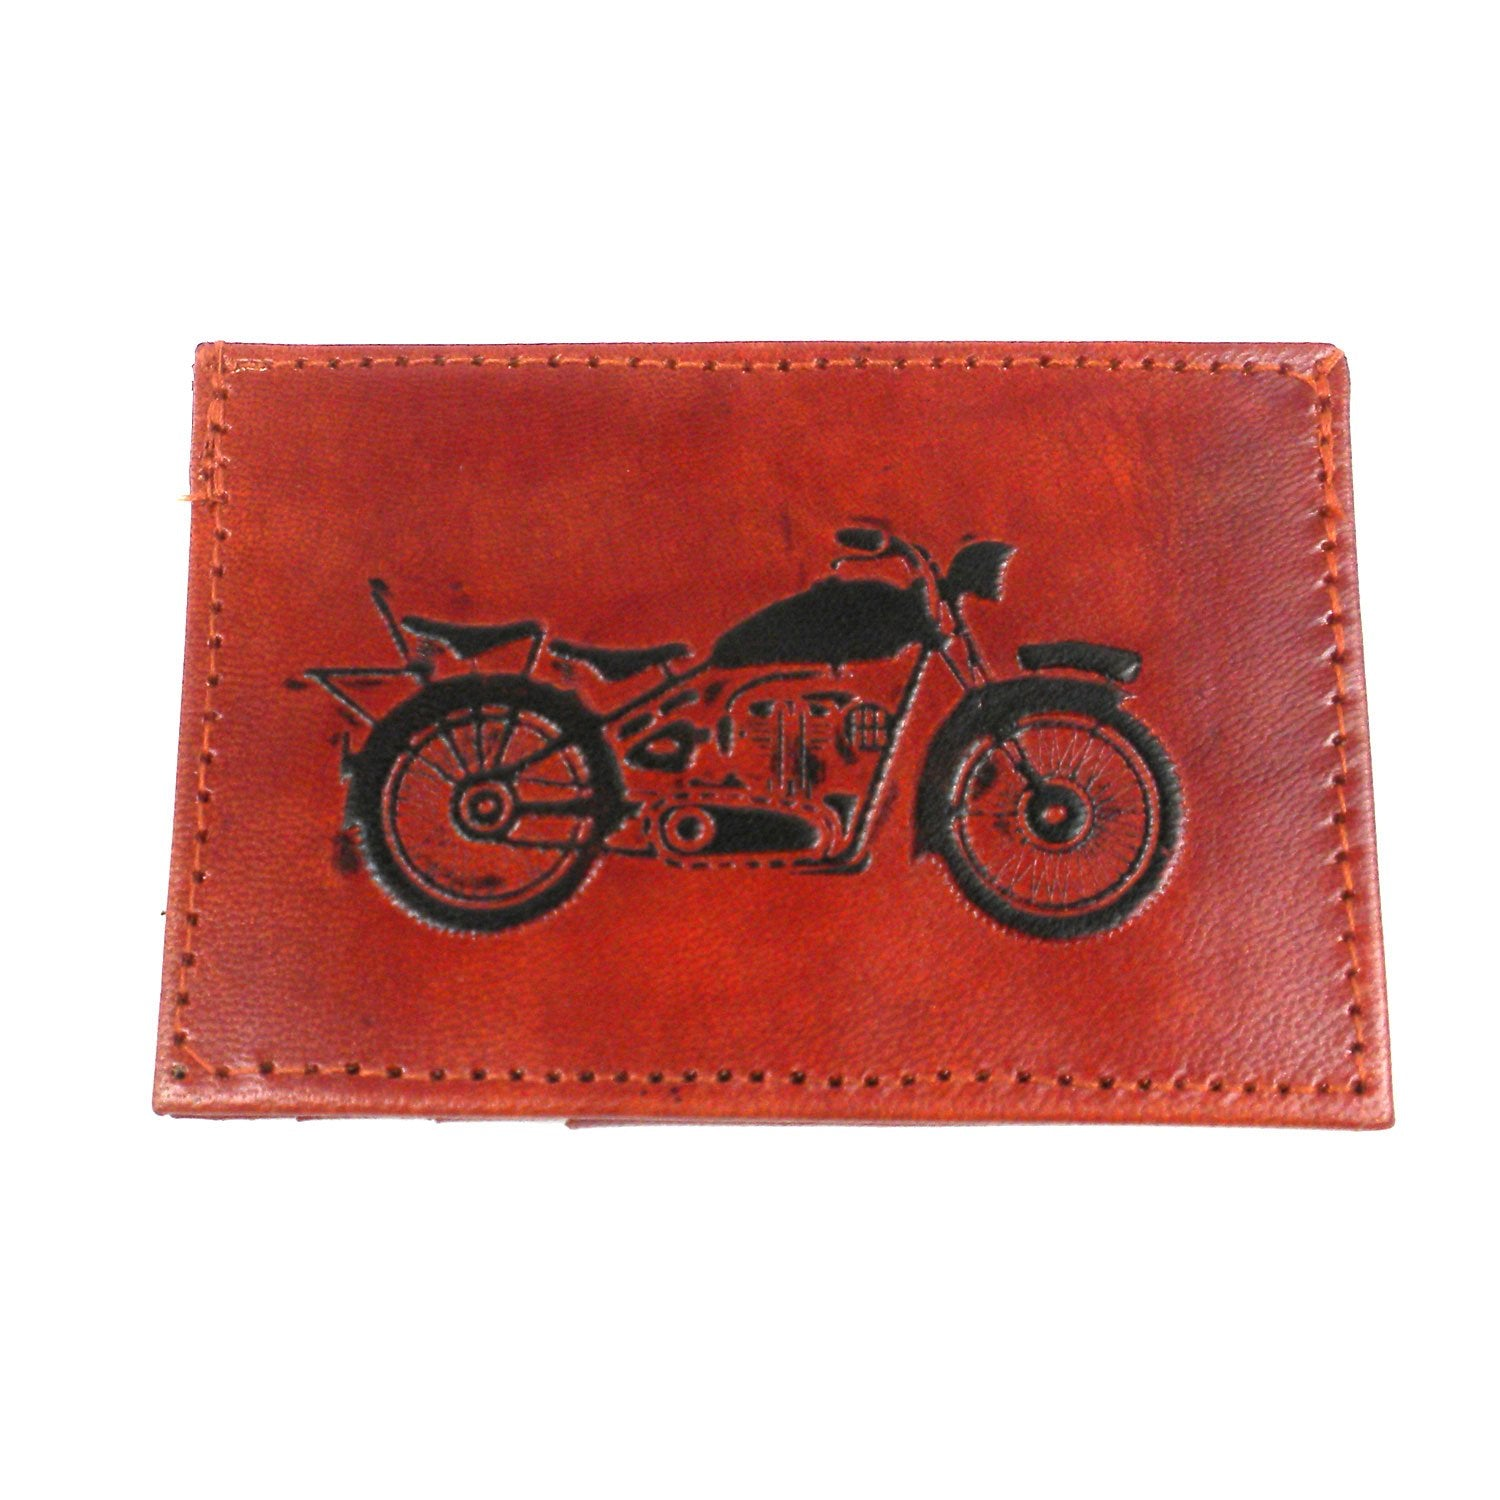 Sustainable Leather Wallet ● Open Road ● Matr Boomie - Mandala Sol